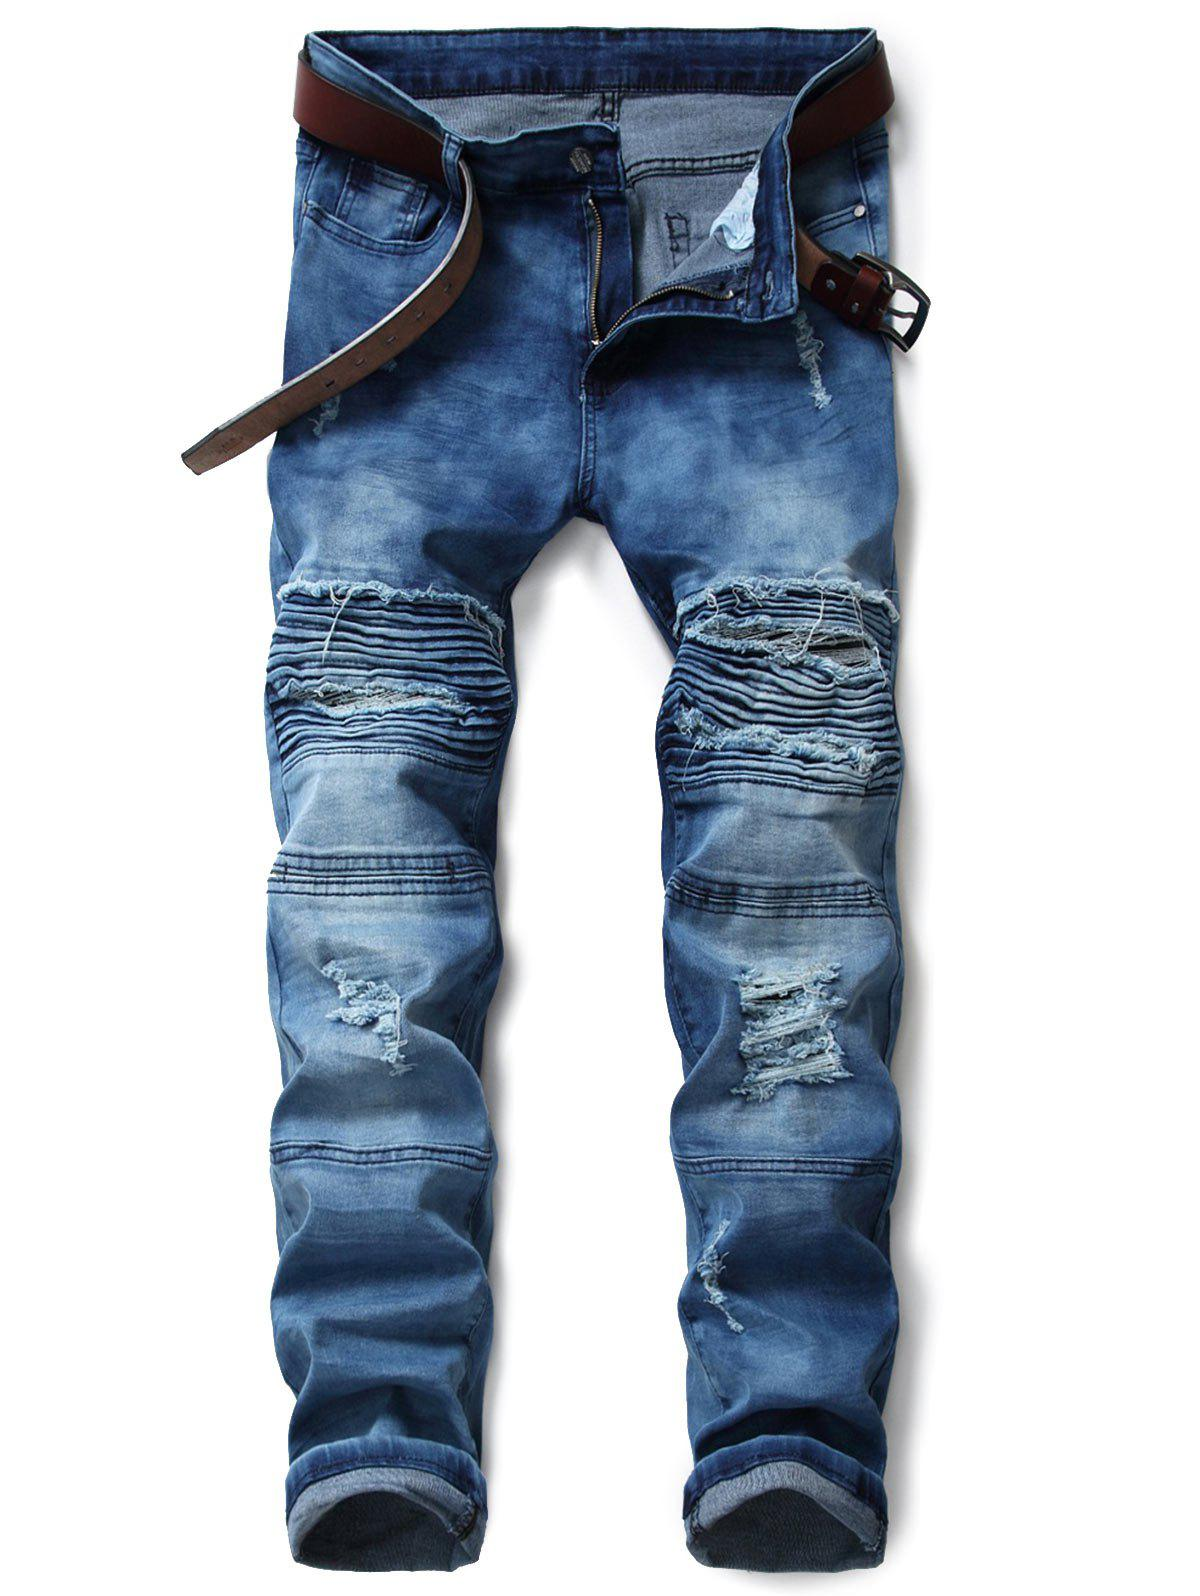 Zip Fly Distressed Tie Dyed Biker Jeans the 5 7 9 extrusion clamp rg6 rg11 pressing line clamp cable f head special tools